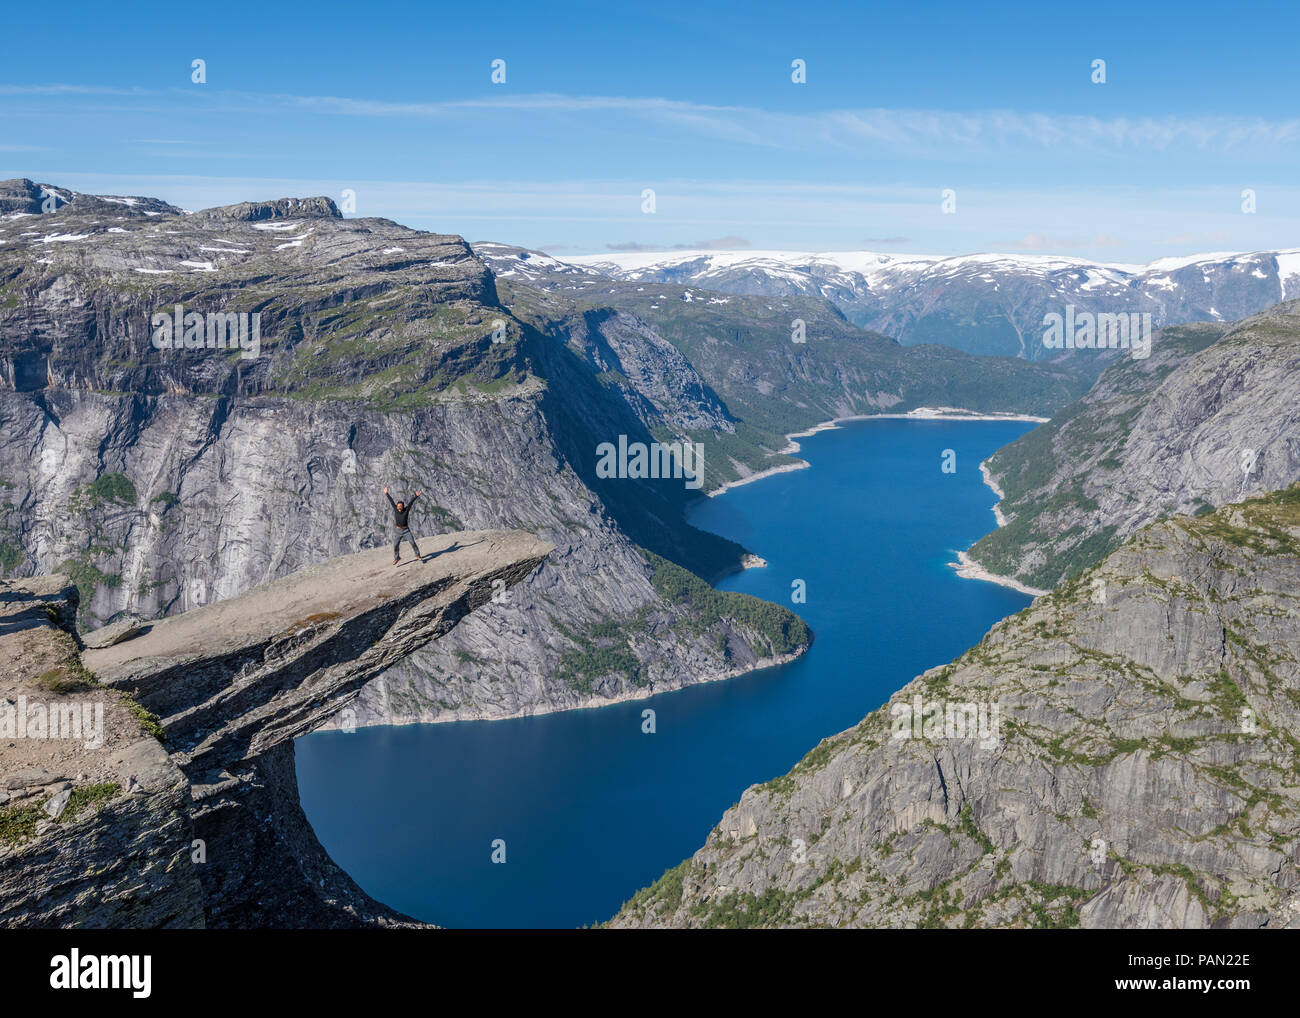 A summer's day at Trolltunga in Norway - Stock Image